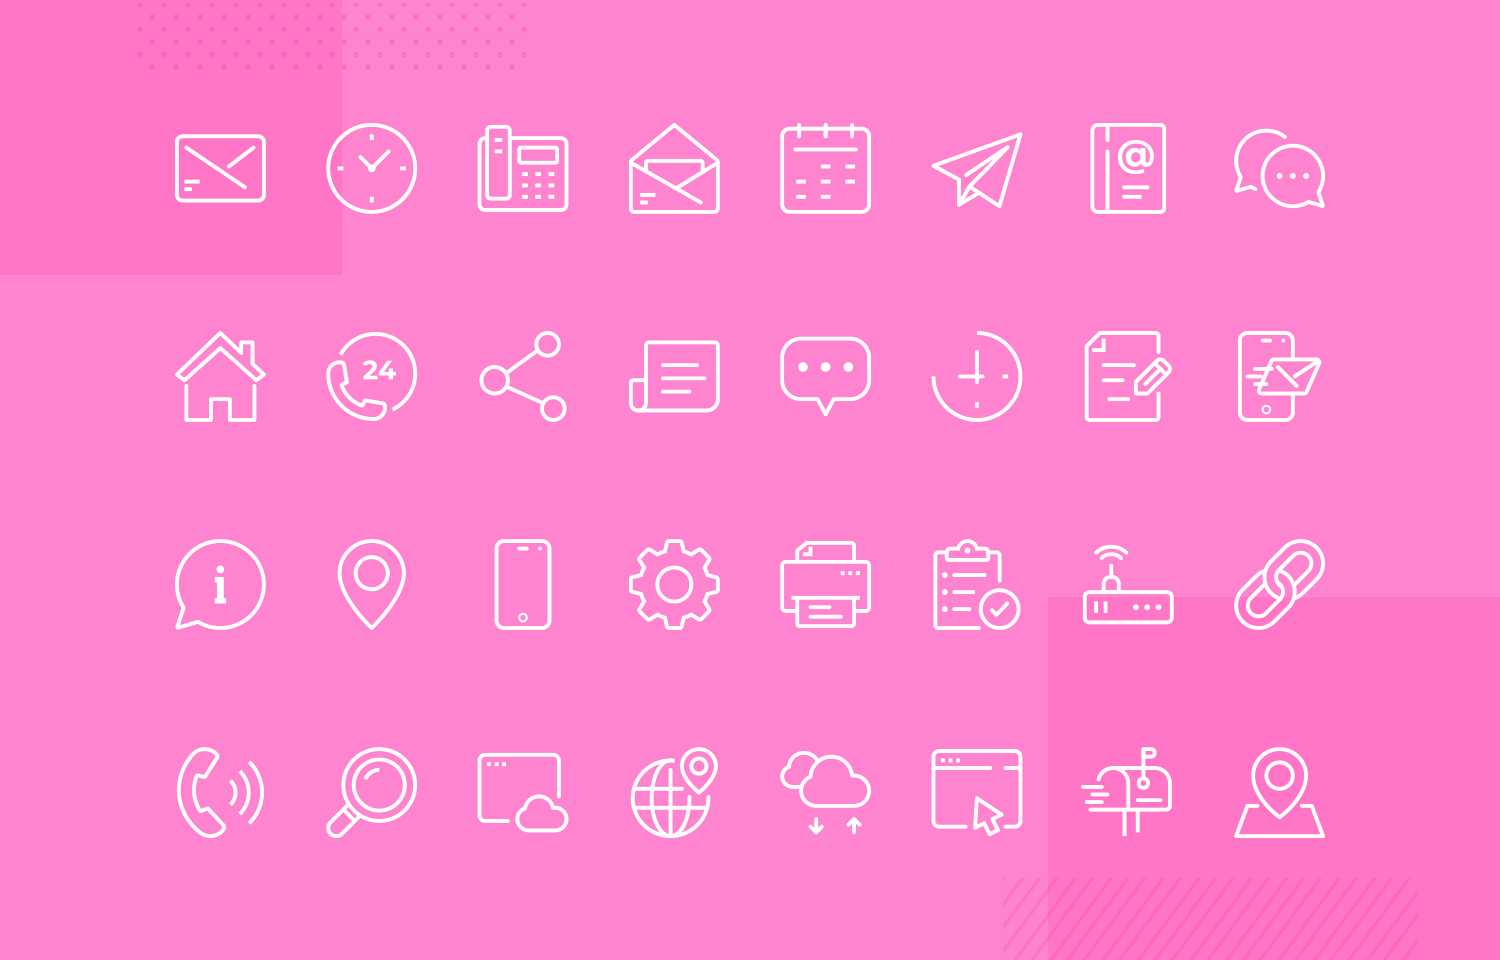 Free app icons to download - for both Android and iOS